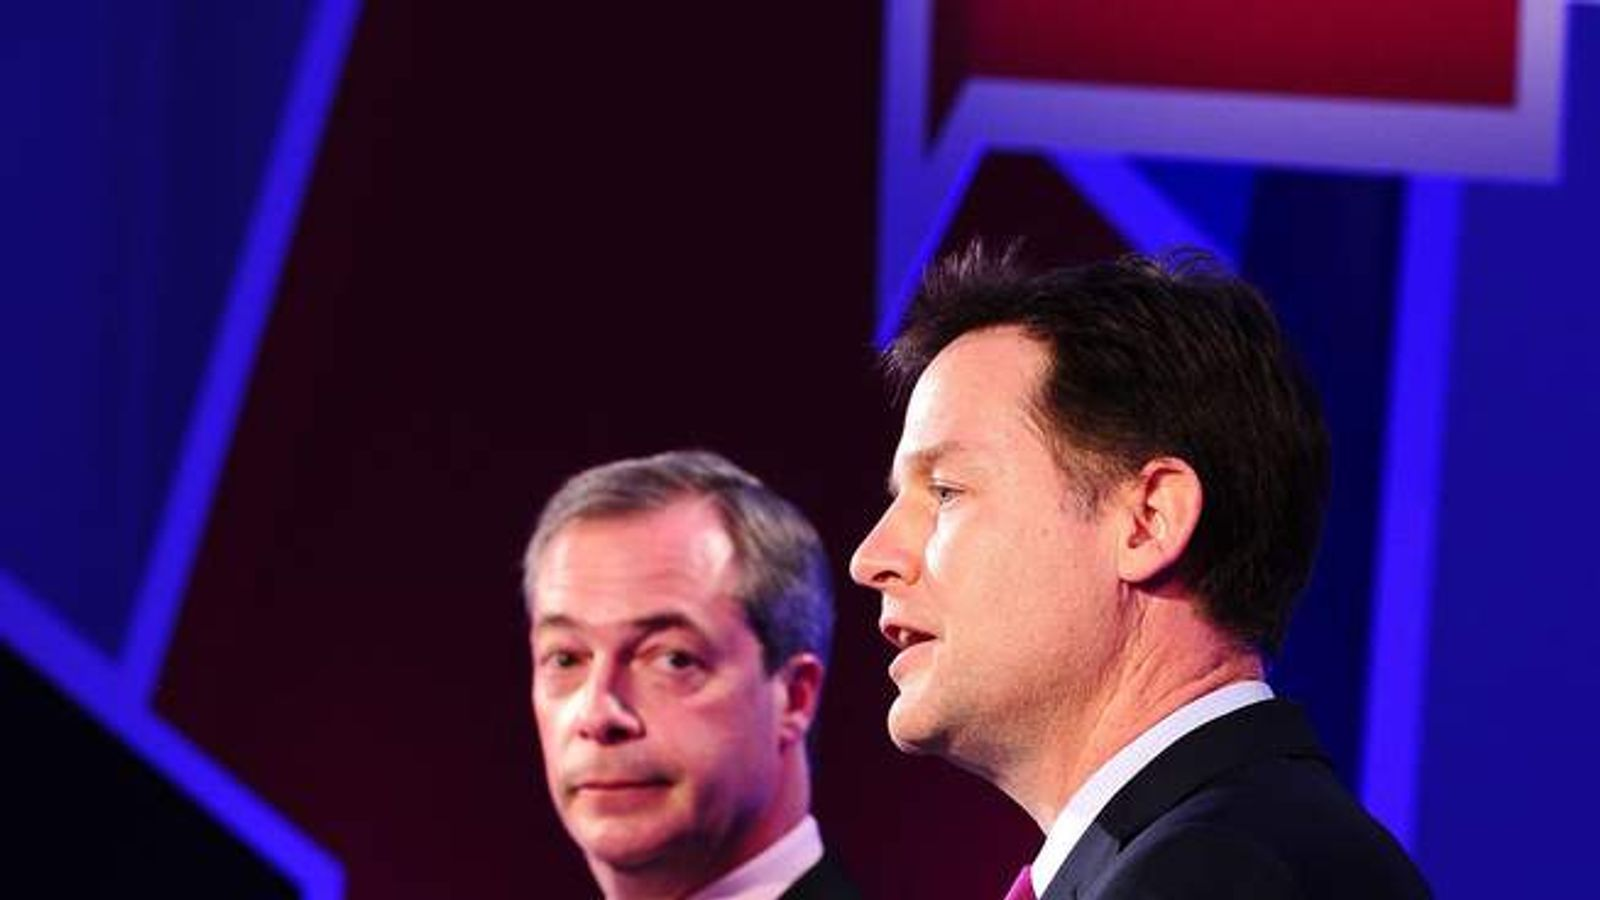 Nick Clegg (R) and Nigel Farage (L) in TV debate